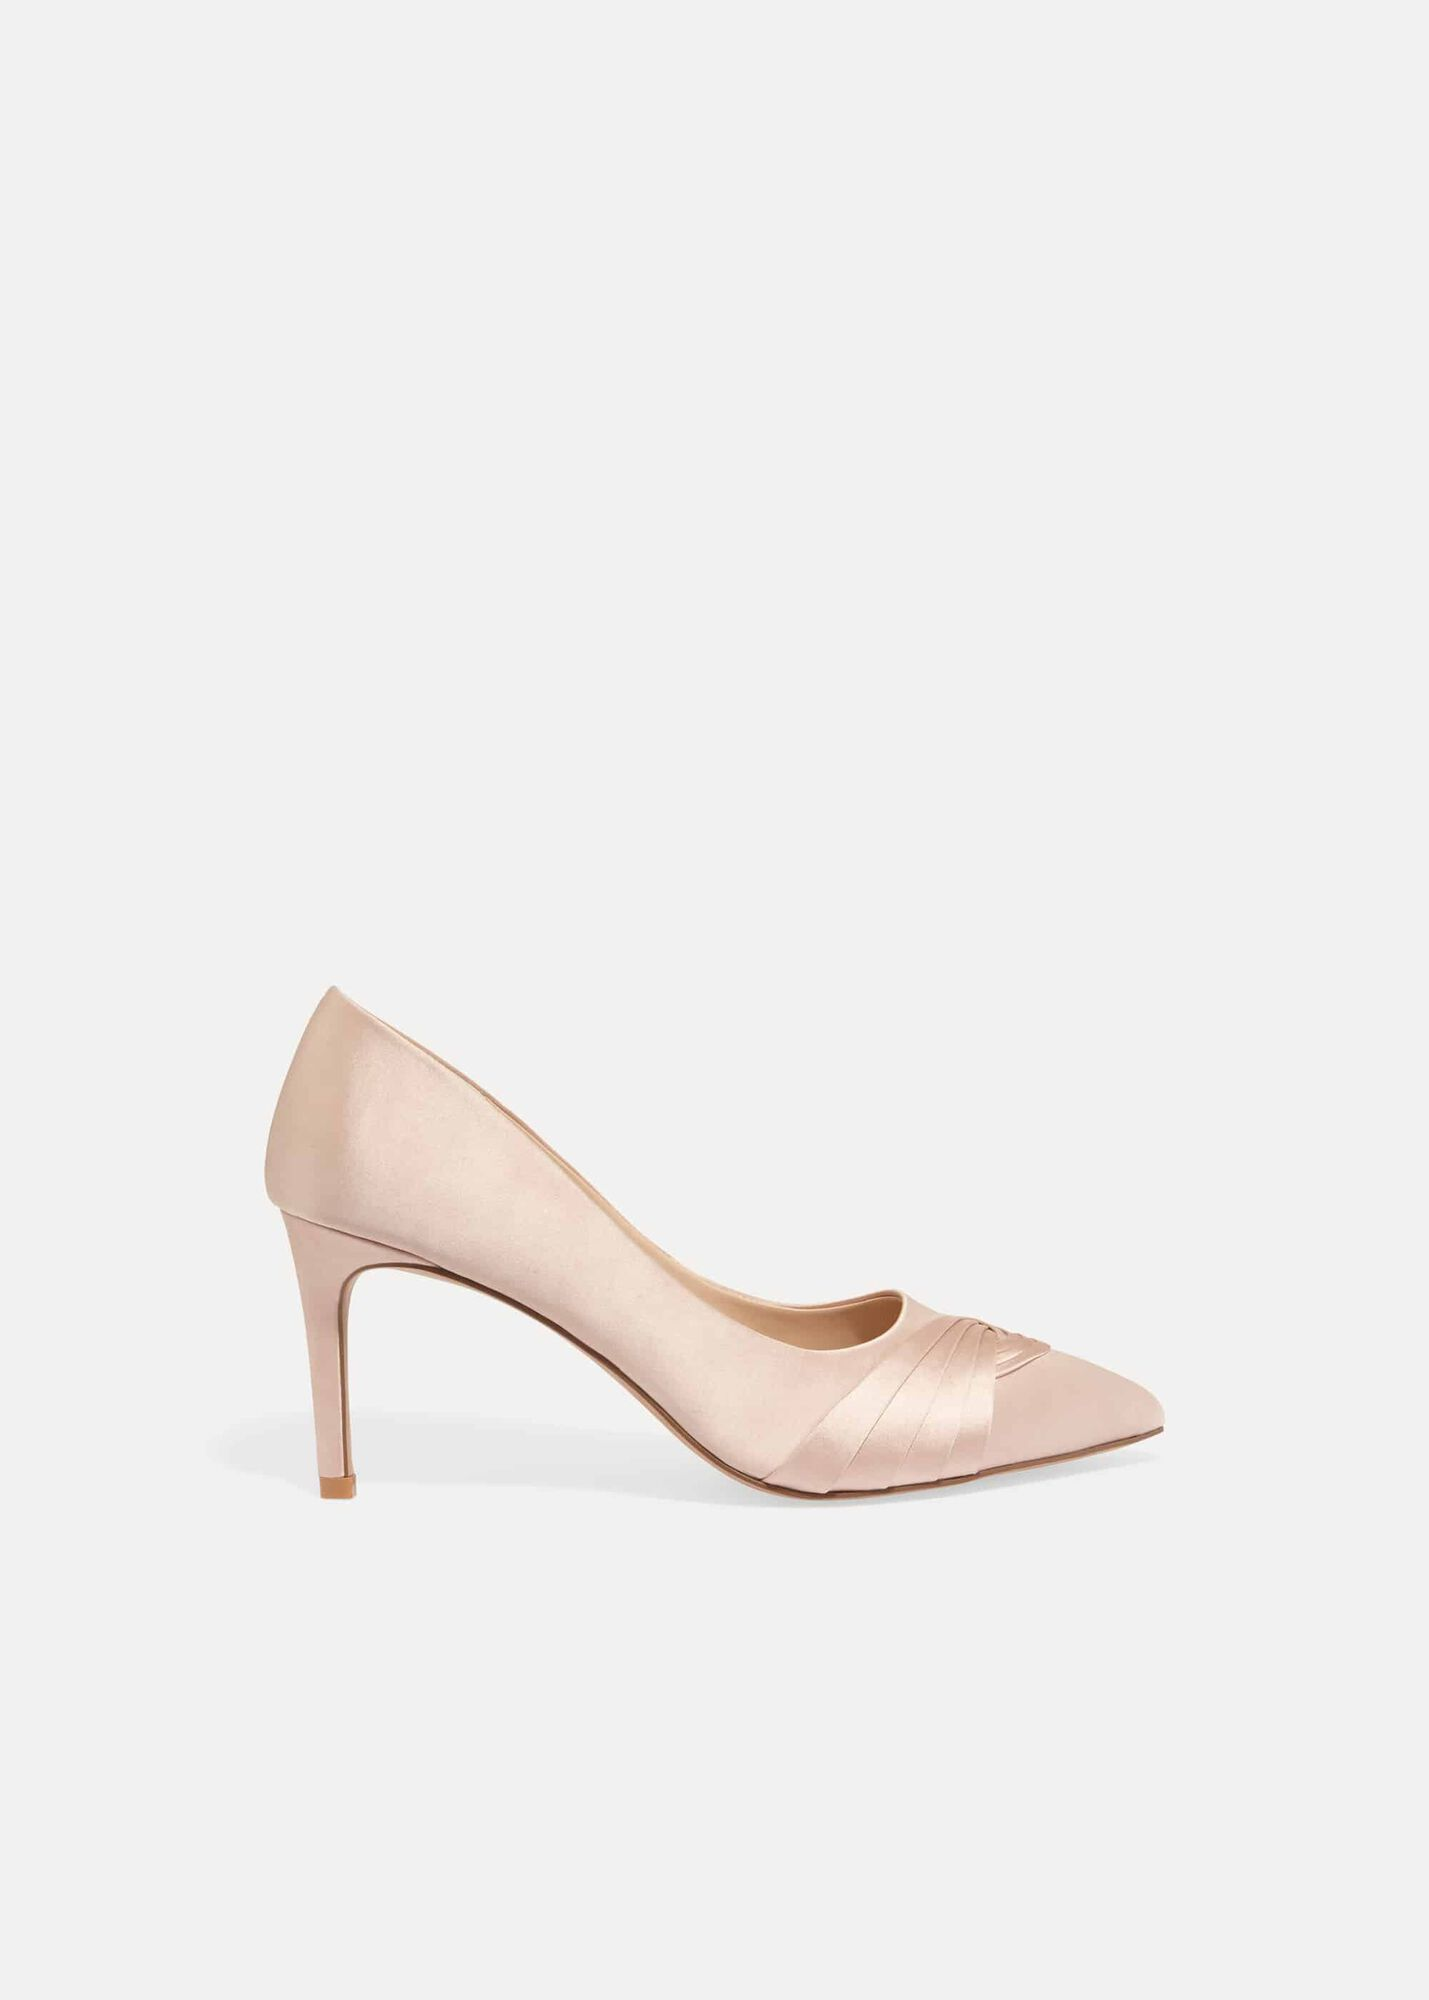 4c900420a6f1 Rosie Satin Court Shoes | Phase Eight | Phase Eight